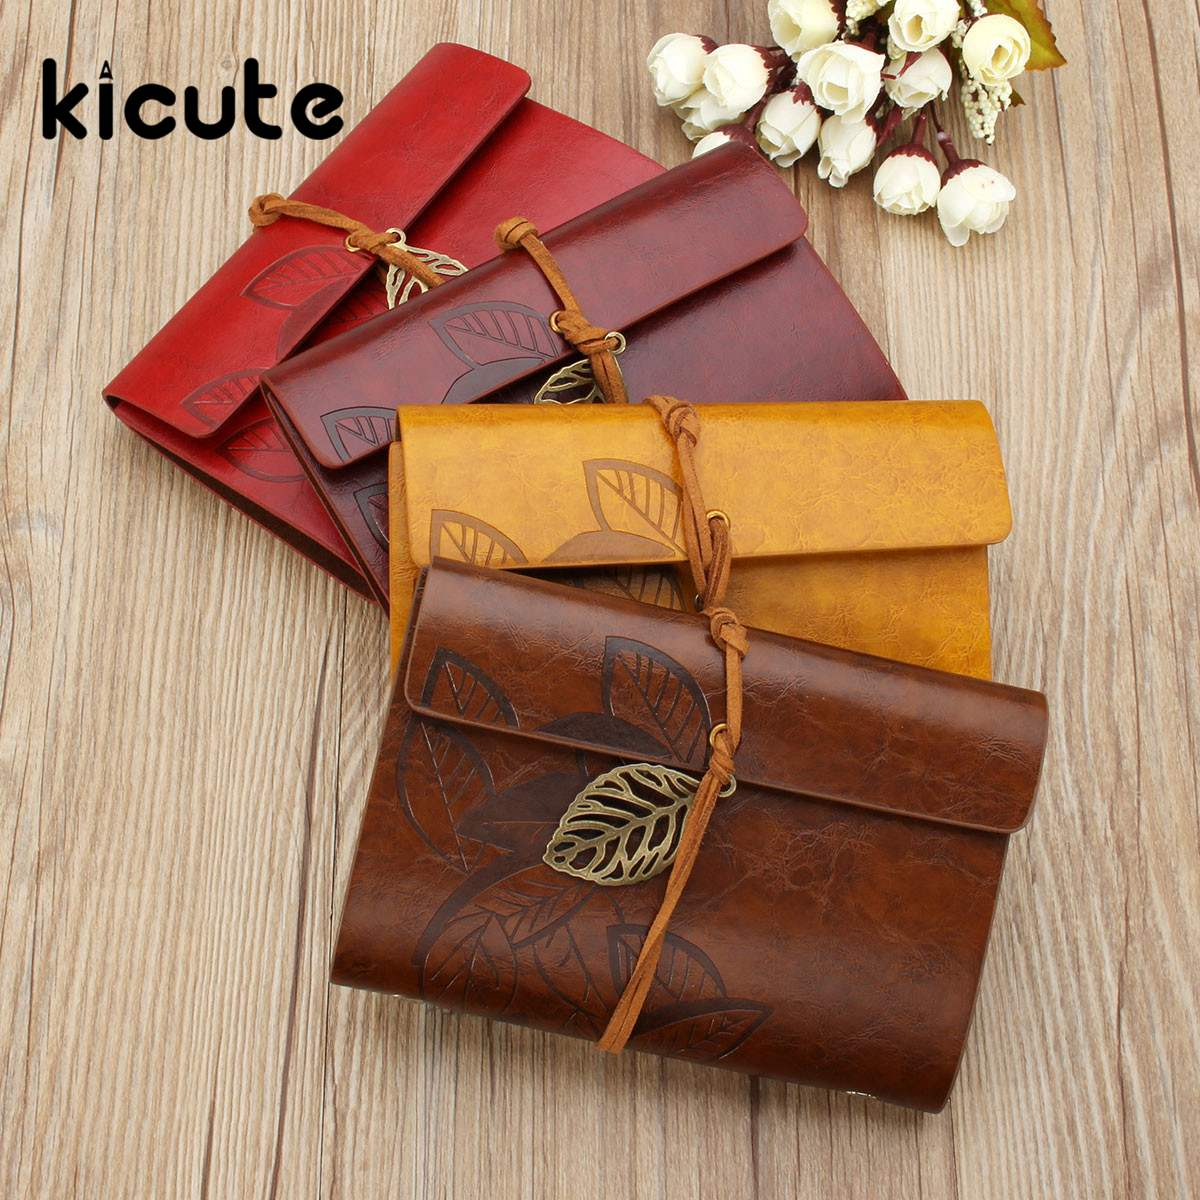 KiCute Sketchbook Stationery Agenda Vintage Diary Notebook Writing Pockets Book Leaf Leather Cover Loose Blank Travel Gift